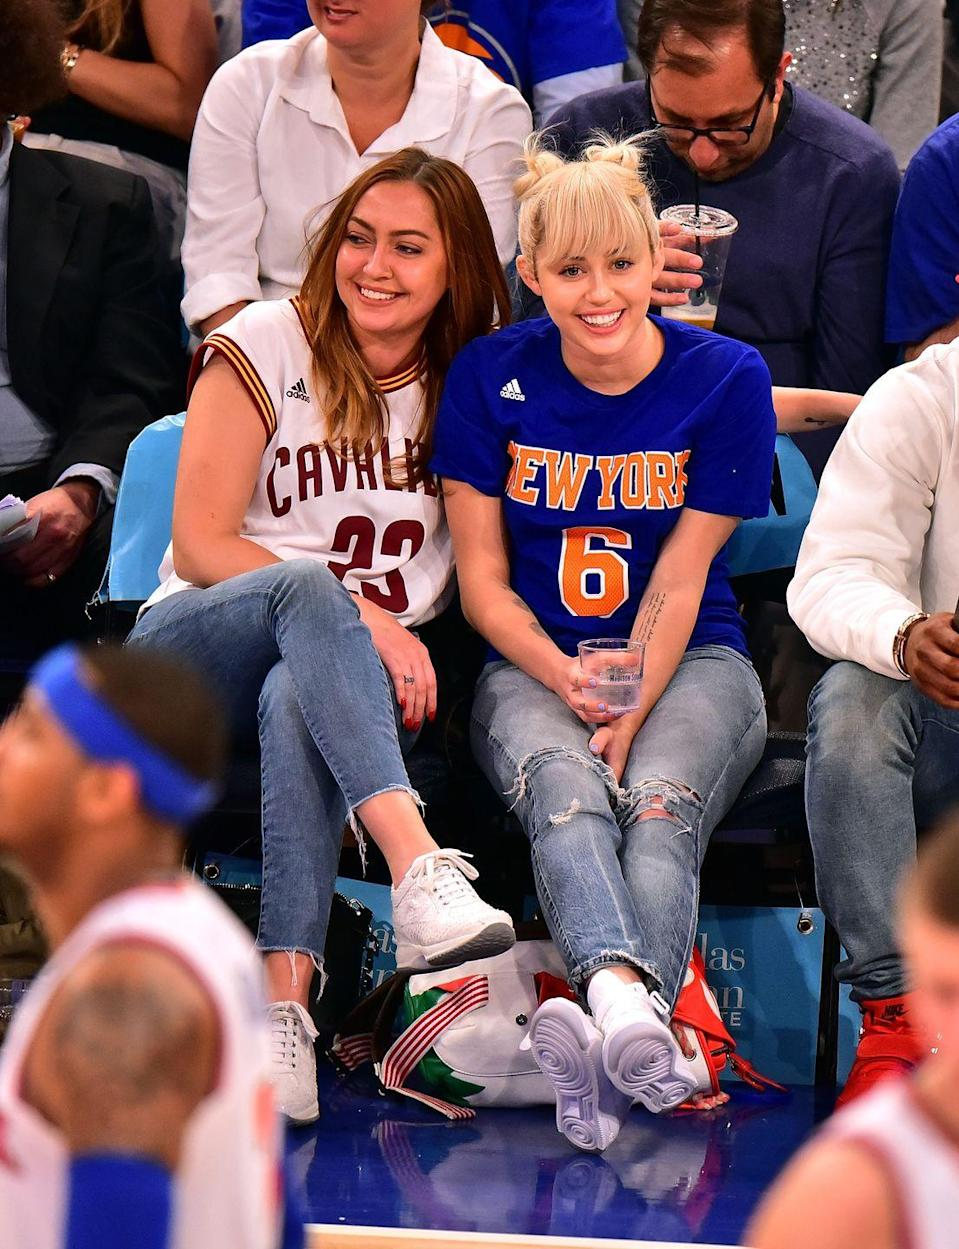 <p>Brandi and Miley Cyrus both grew up as celebrity off-spring—their dad is country singer, Billy Ray Cyrus—and they both followed him into the music industry. Not to mention, they have the same round faces and wide smiles.</p>